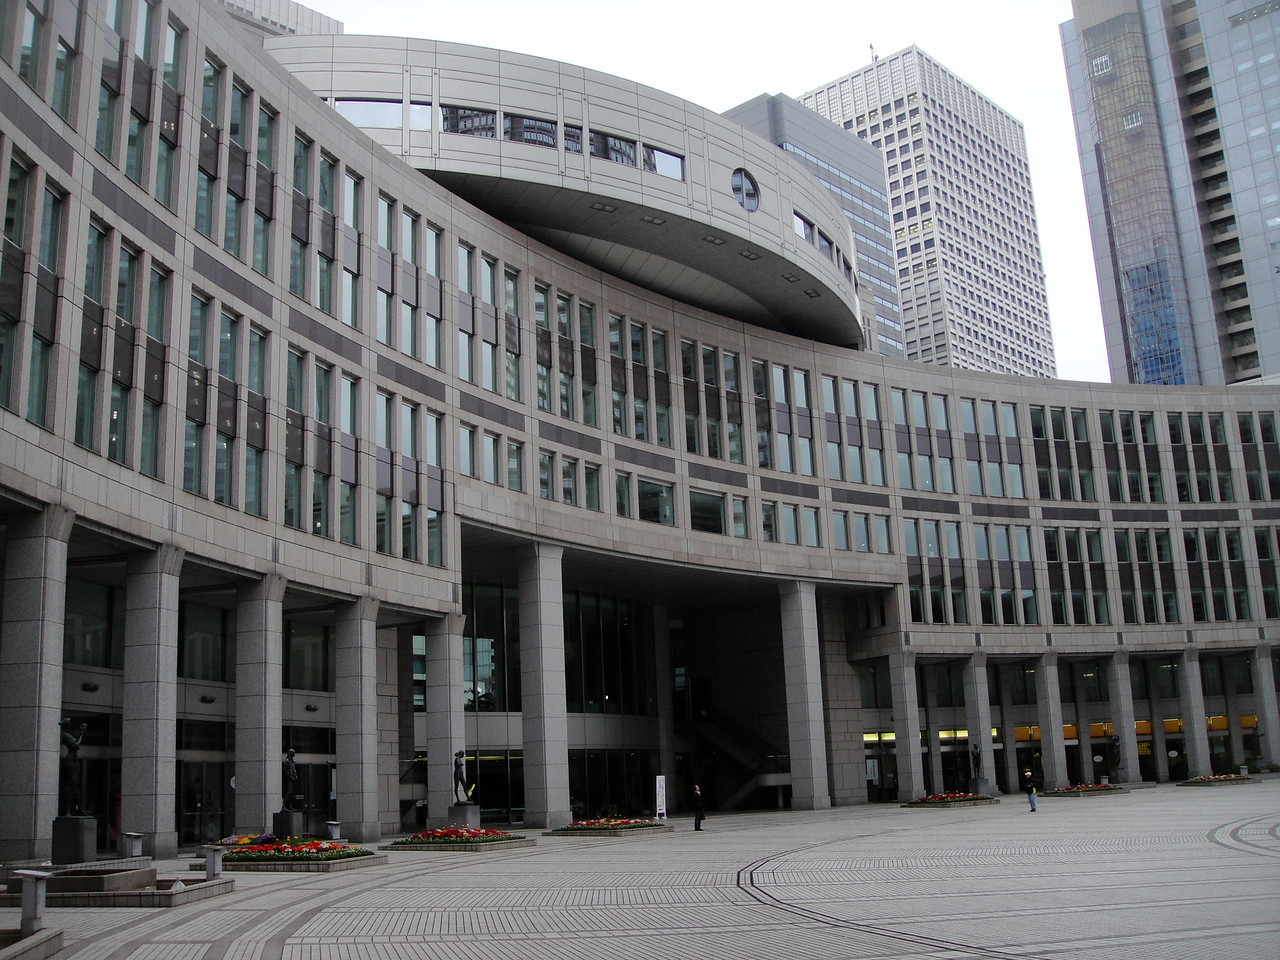 This is the center where 1000's of government employees keep Japan running.